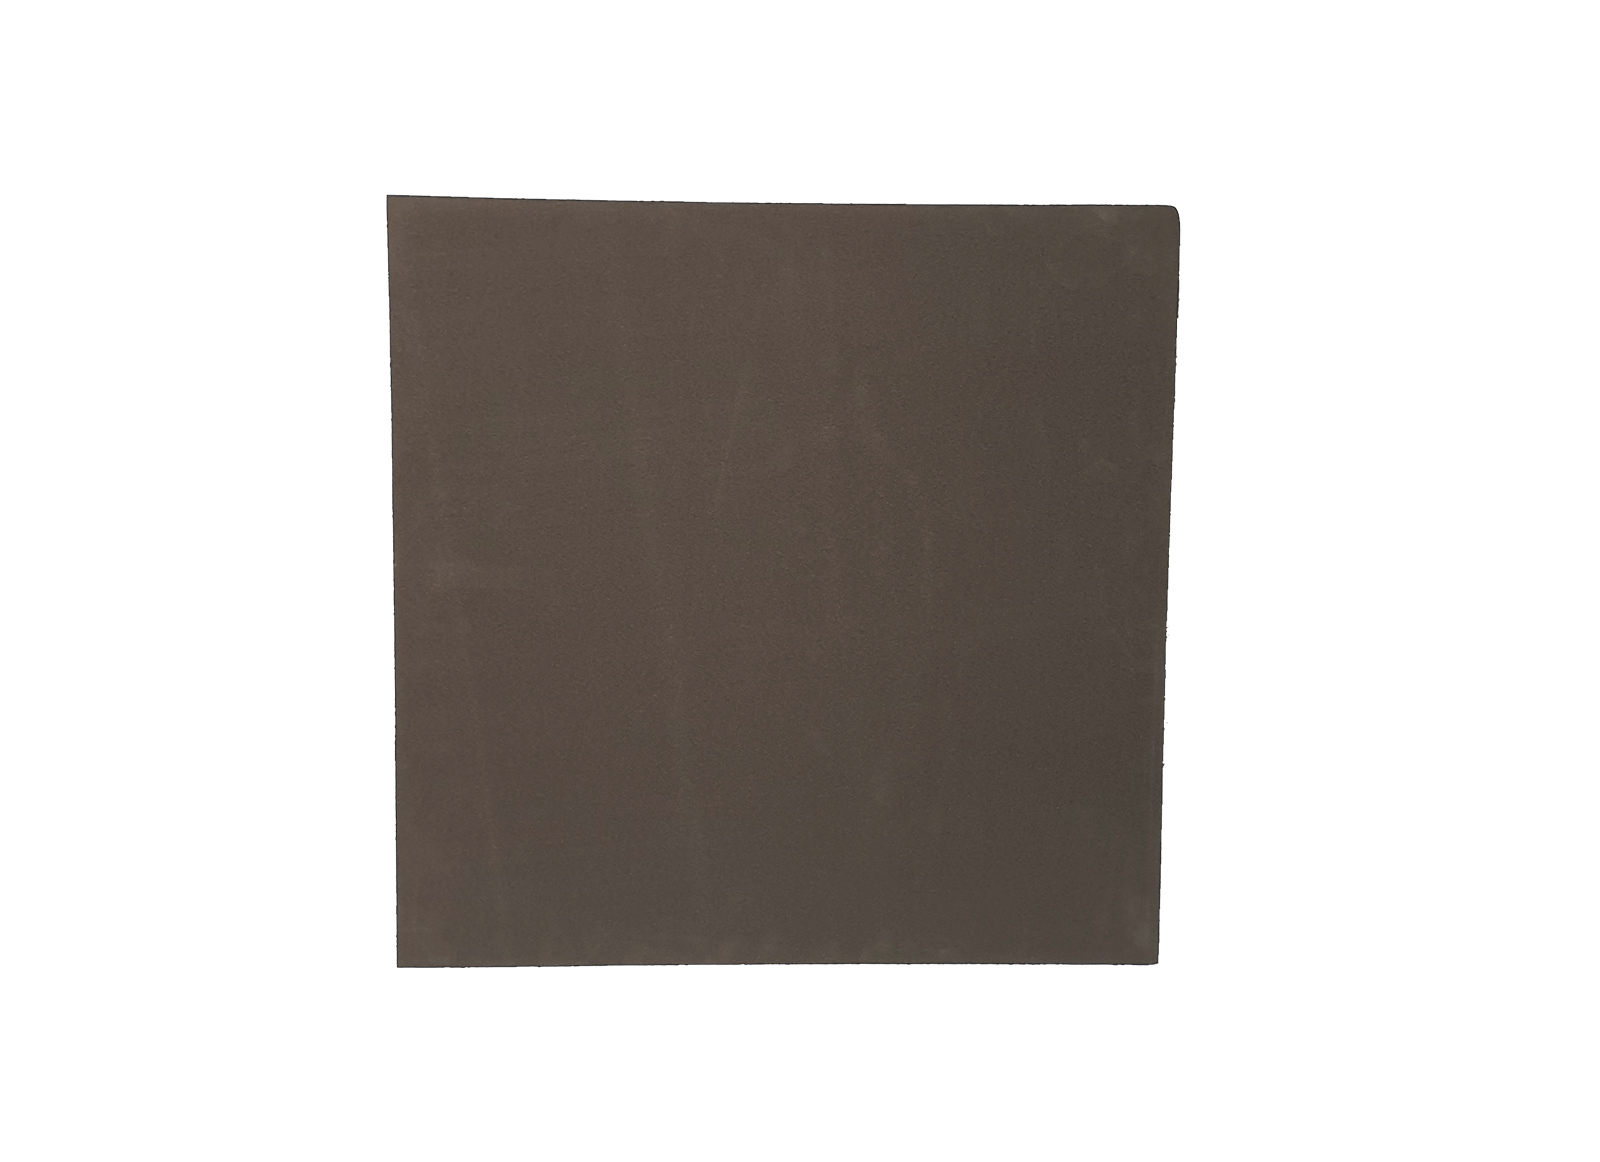 DISPORT BATTIFRECCIA IN SCHIUMA MEDIUM DENSITY 80X80X7 CM